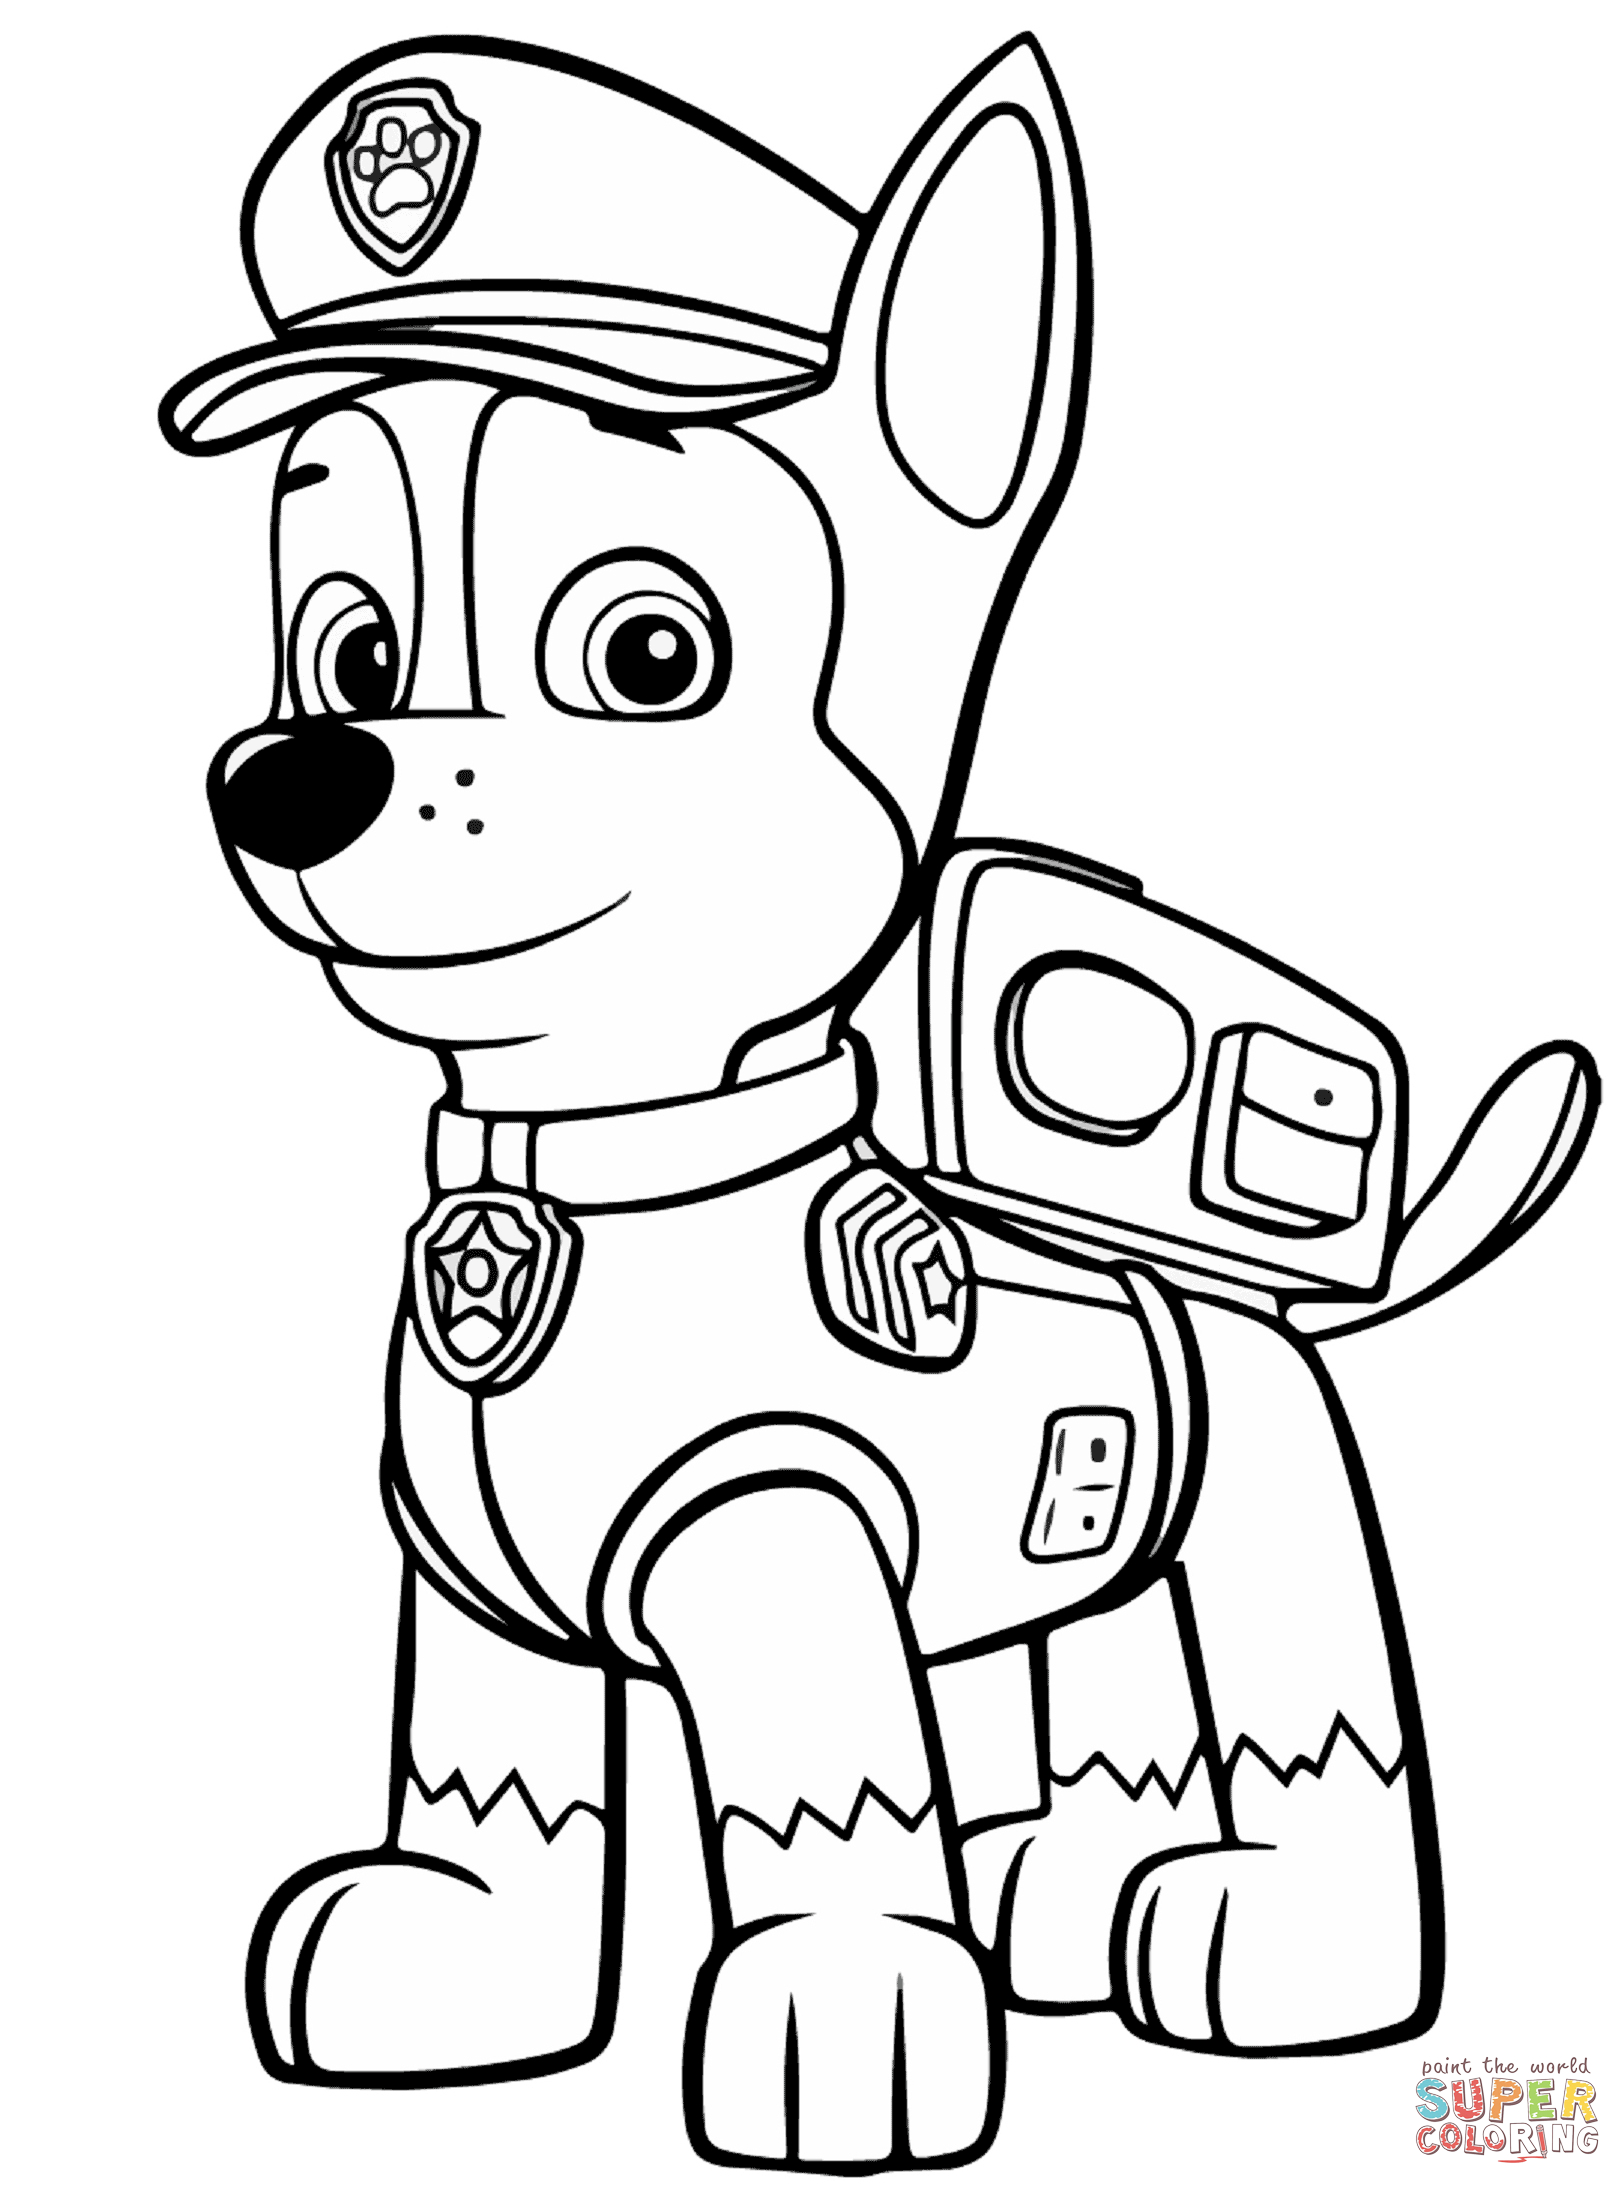 25+ Excellent Picture of Chase Paw Patrol Coloring Page